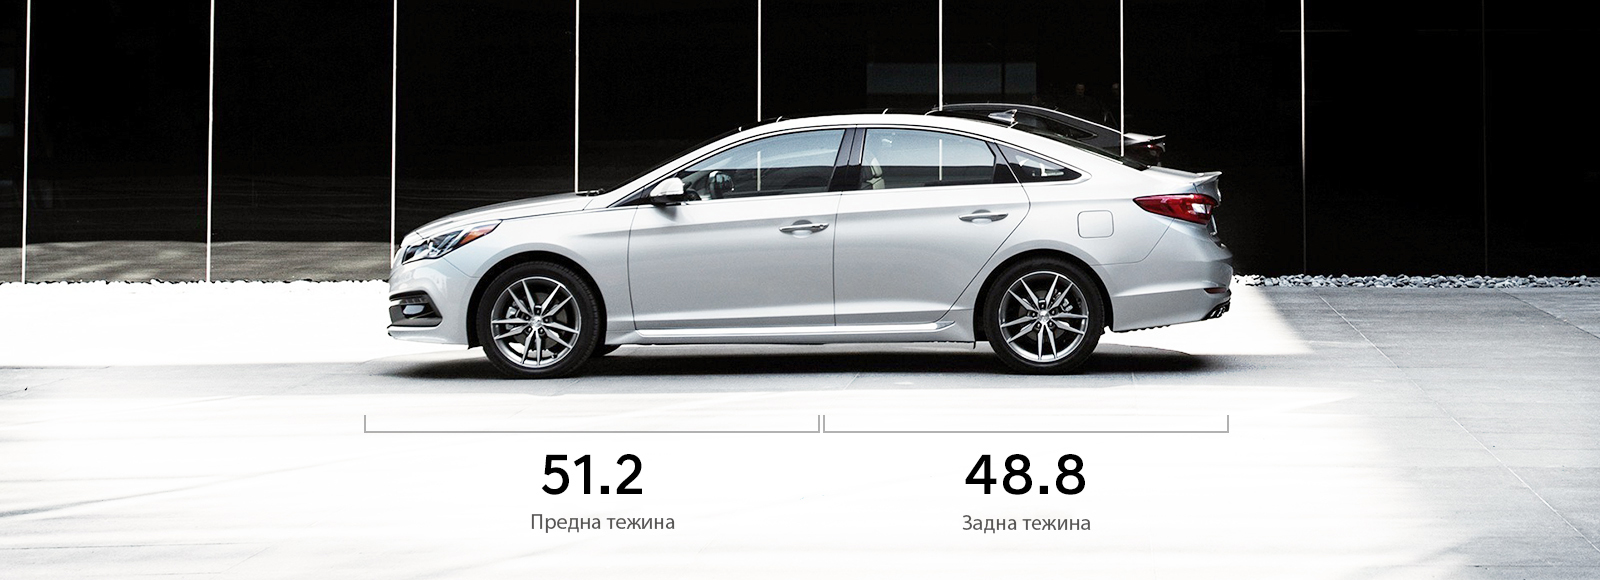 Side view of a car with numbers, 51.2 and 48.8